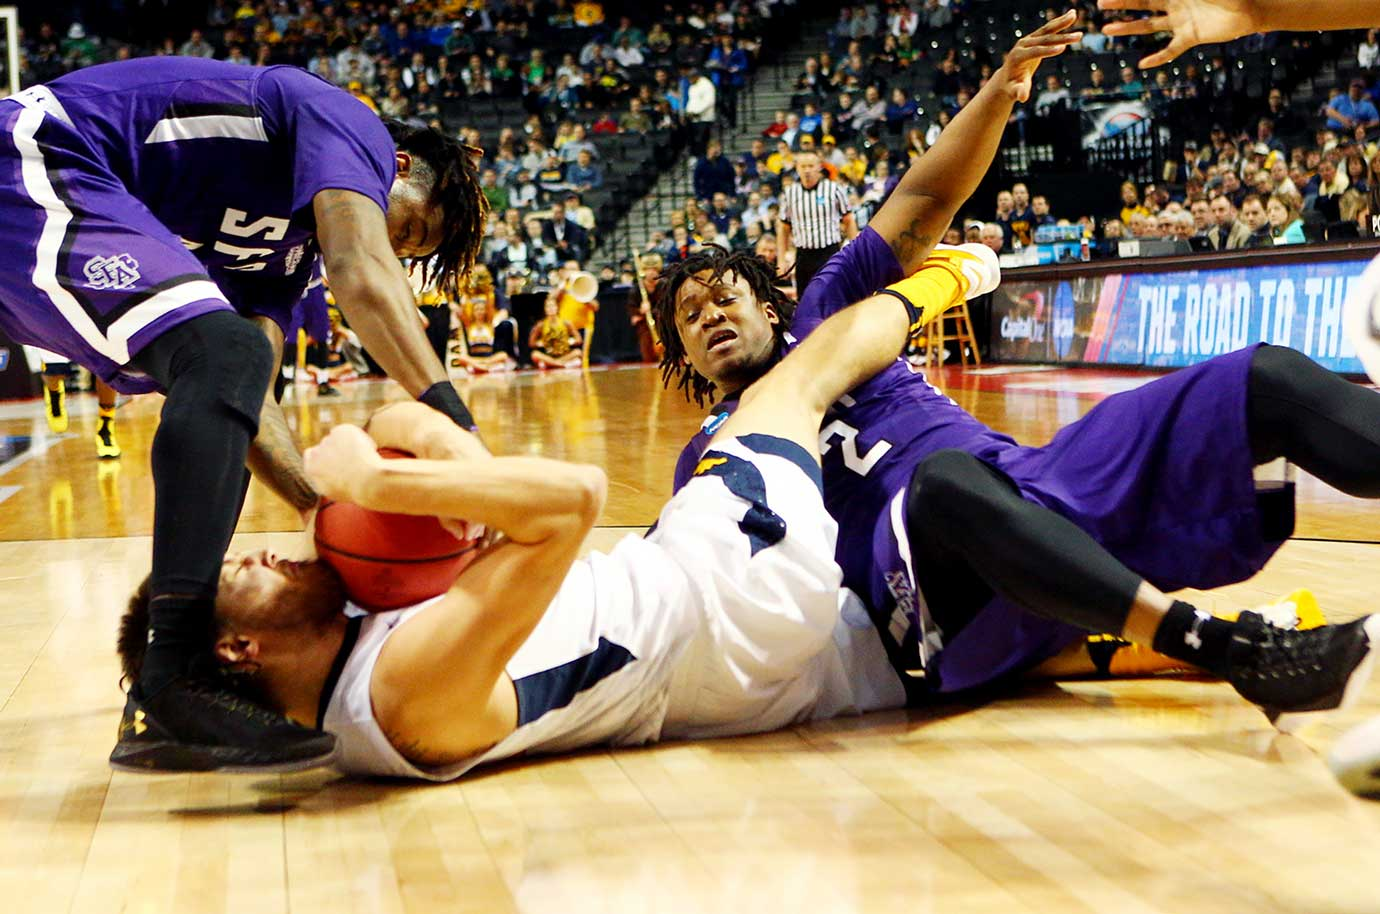 The Mountaineers became the first No. 3 seed to be eliminated from the NCAA Tournament.